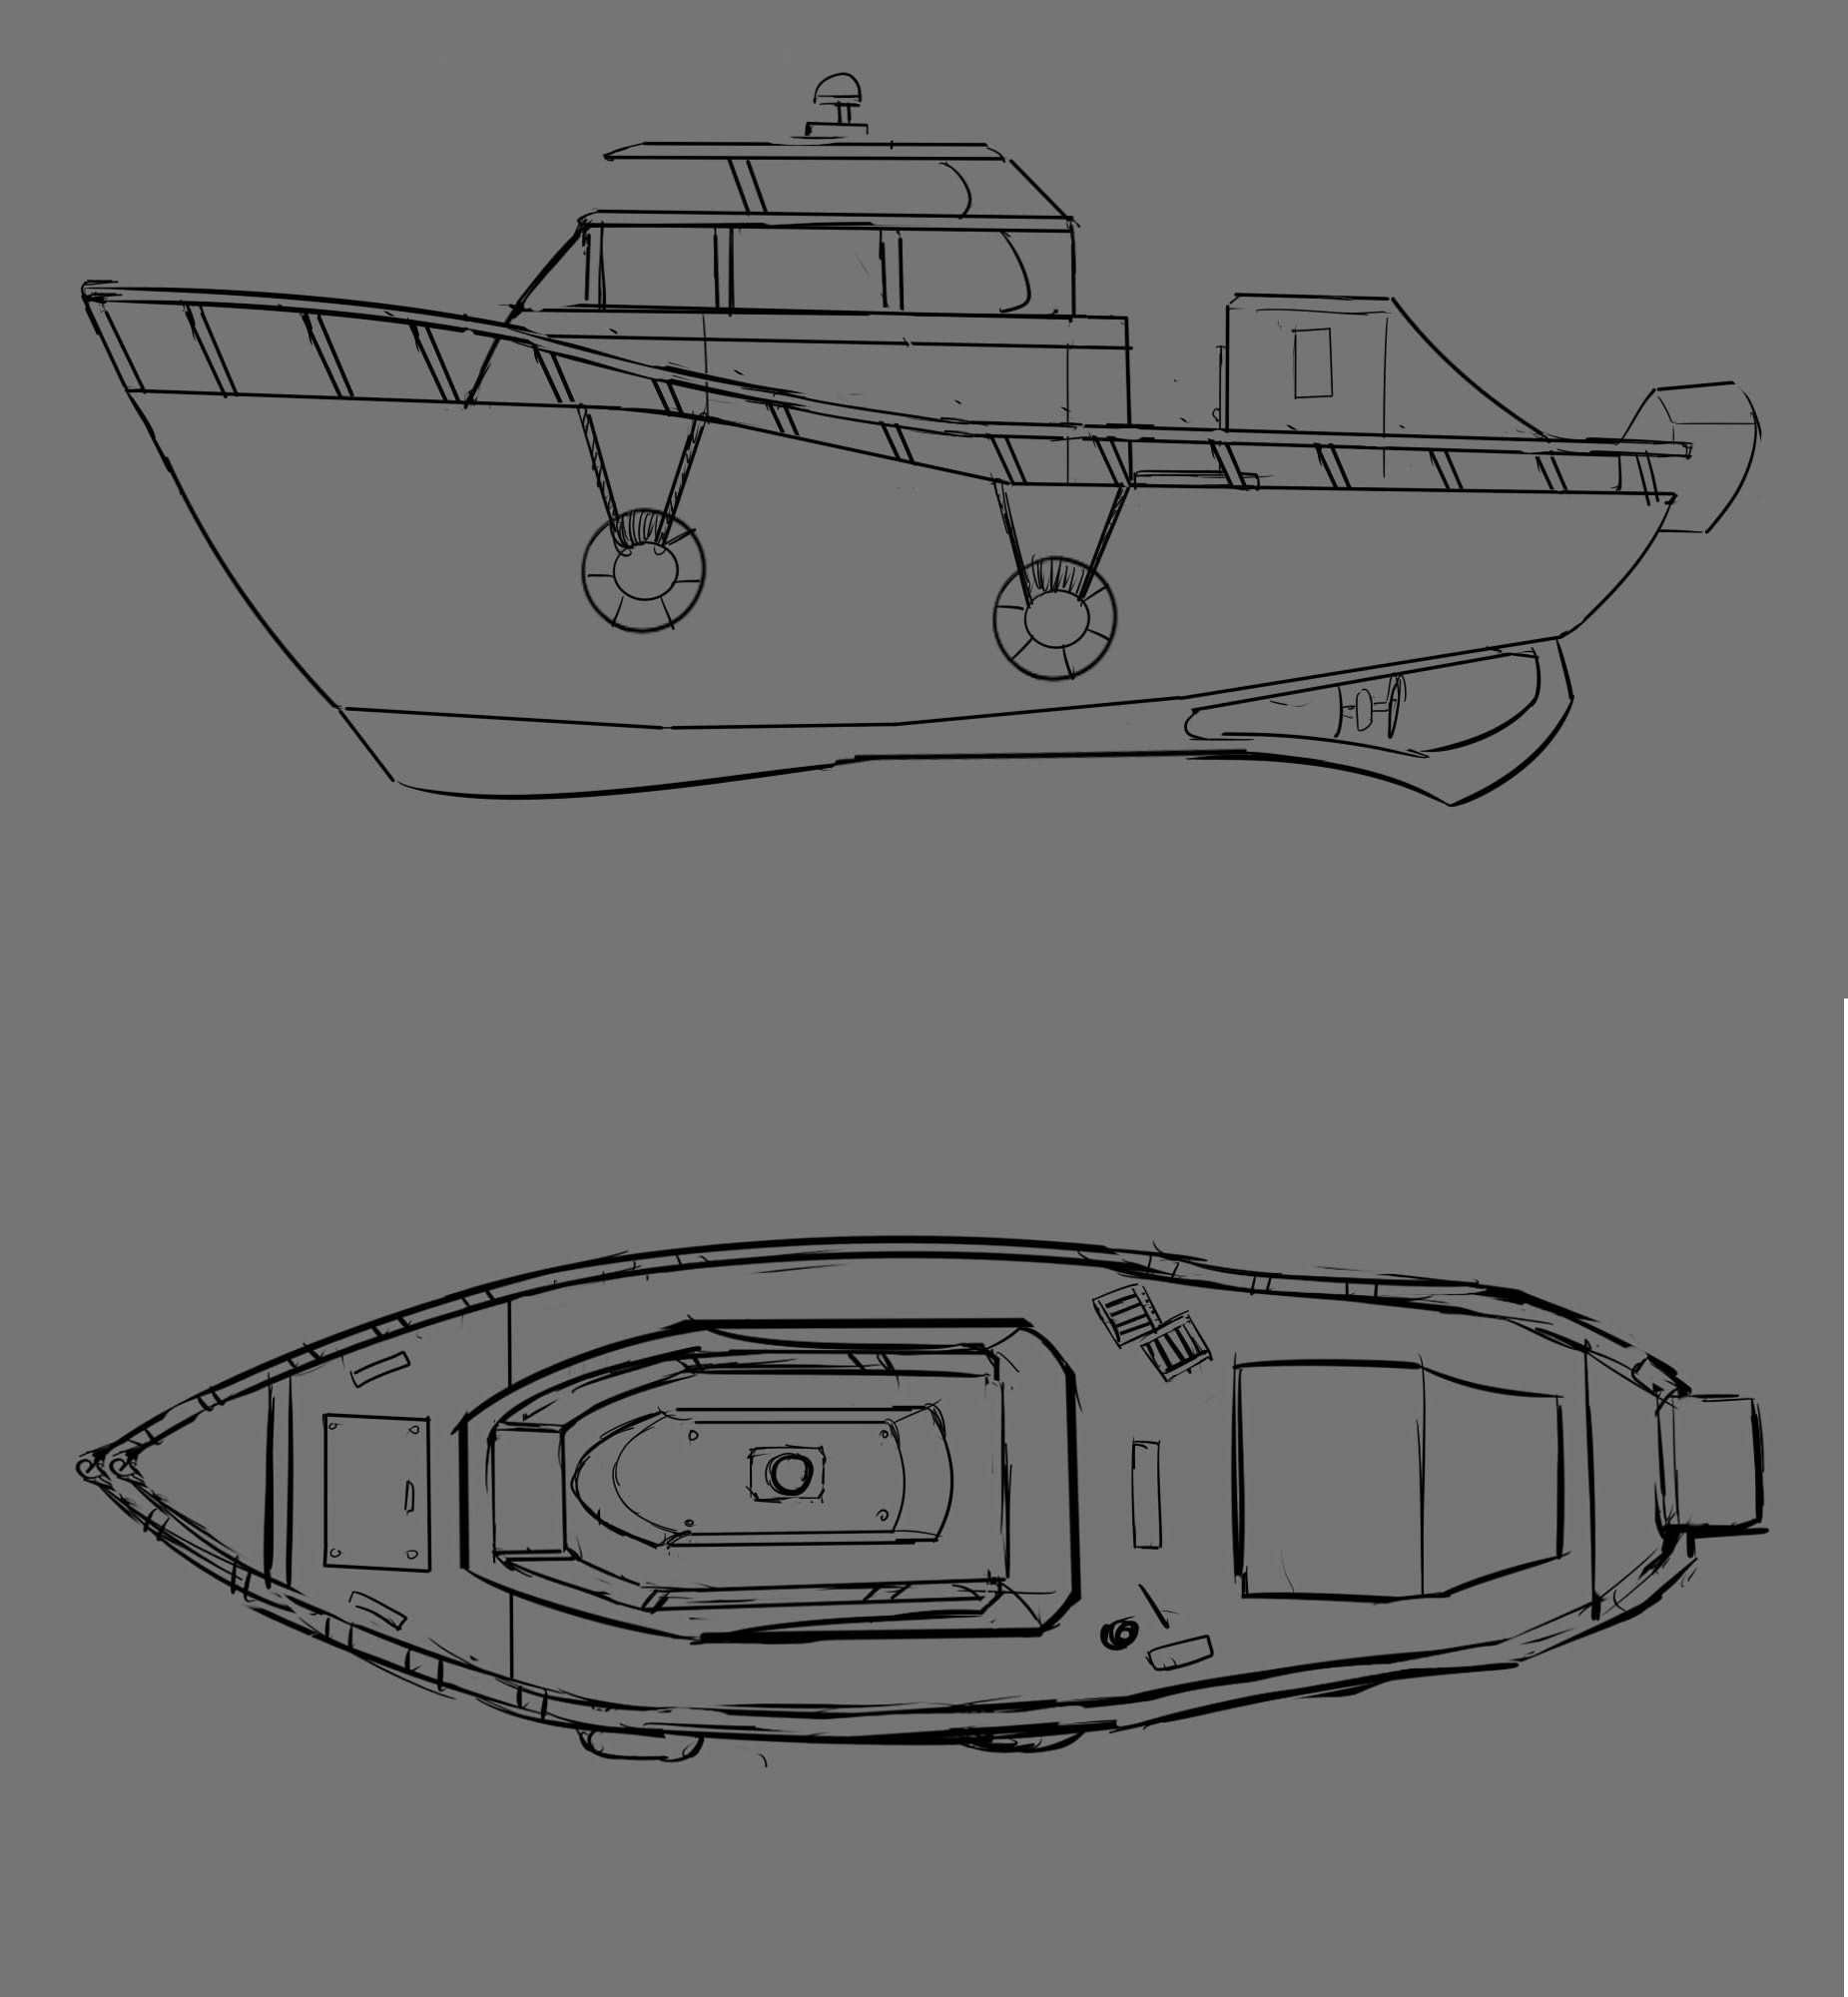 Concept for the boat